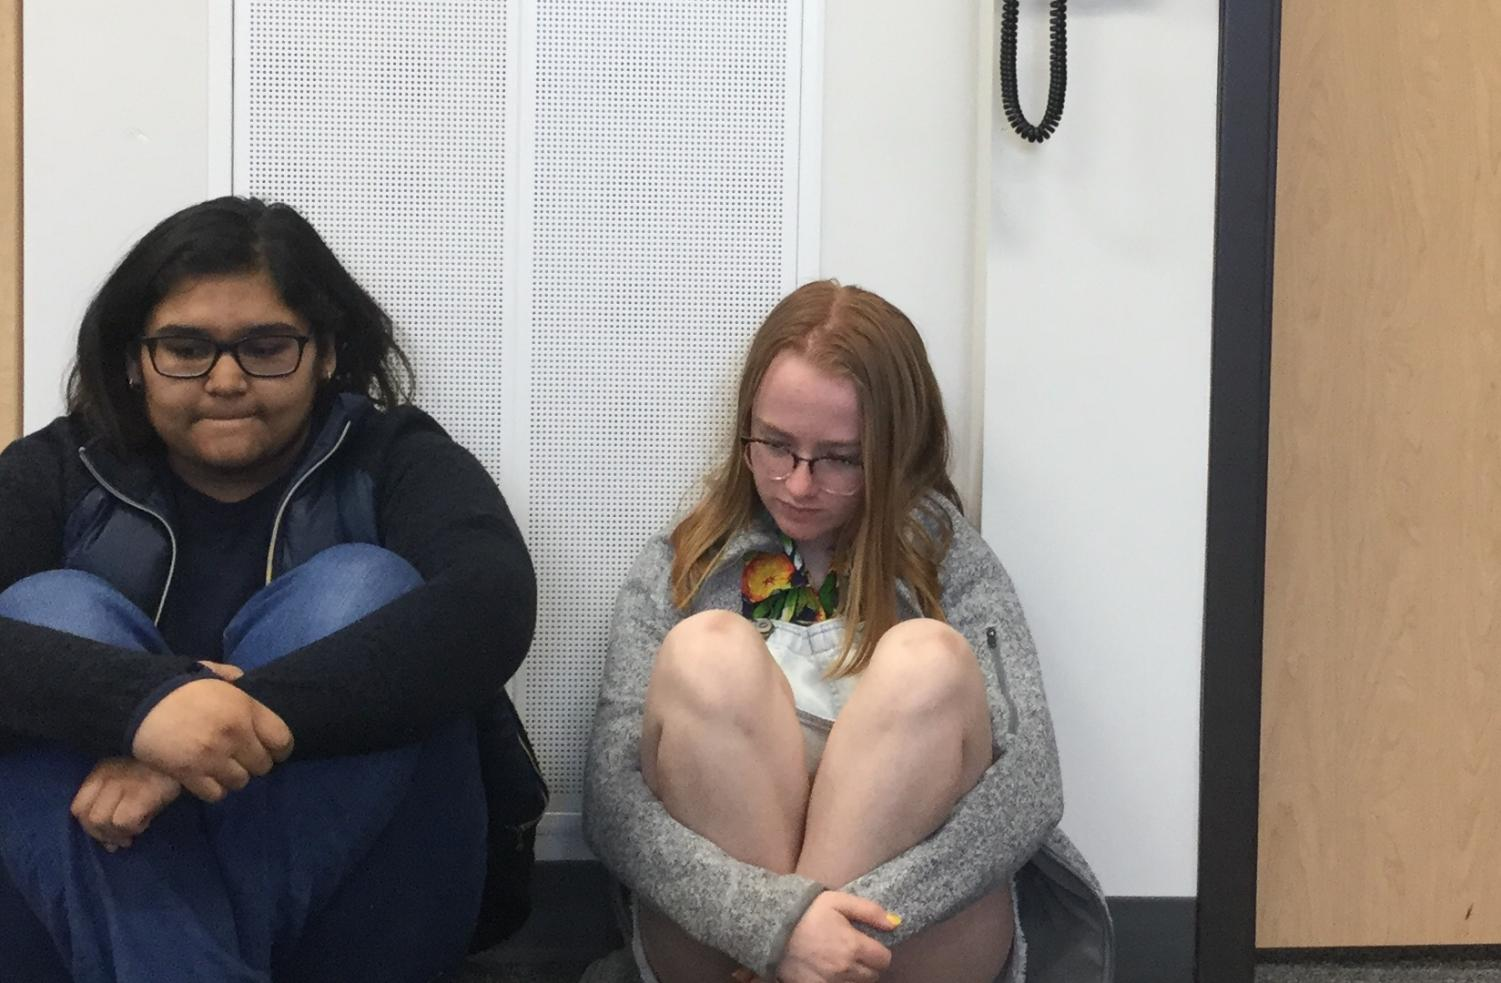 Maryam Mohammed '21 and Morgan Dunn '21 demonstrate the current procedure for intruder drills. The school conducts intruder drills by having students sit against the wall and be quiet, out of view of the hall; this is intended to prevent a shooter from realizing that there are potential victims in a room, but the school more or less glosses over what to do if an intruder gains access to a classroom with people.